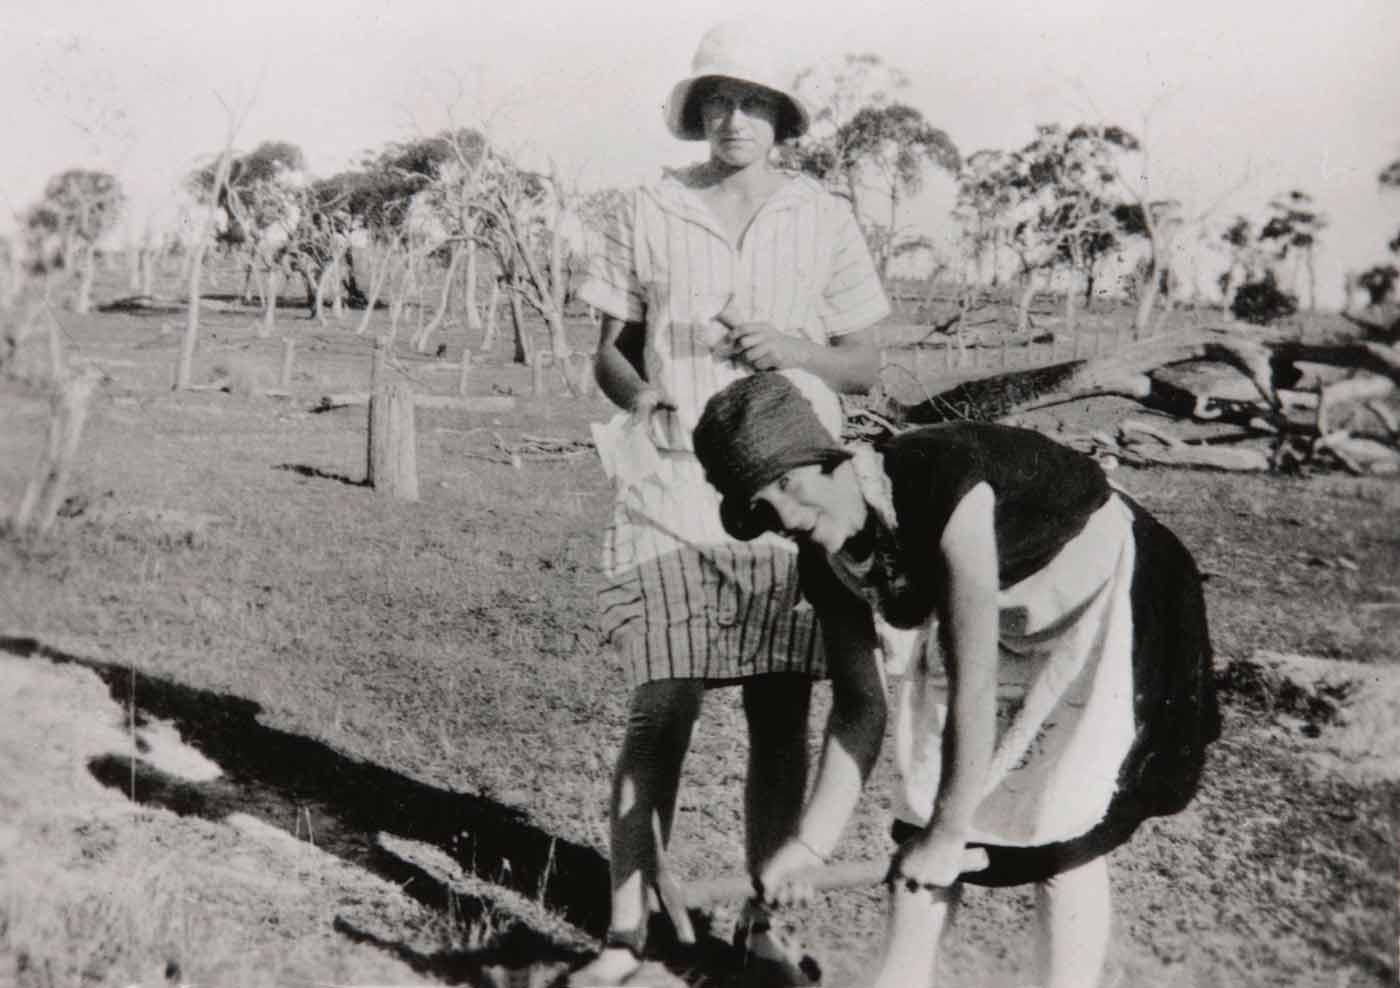 Photograph of a lady using a pick to dig out a rabbit burrow with another lady standing behind